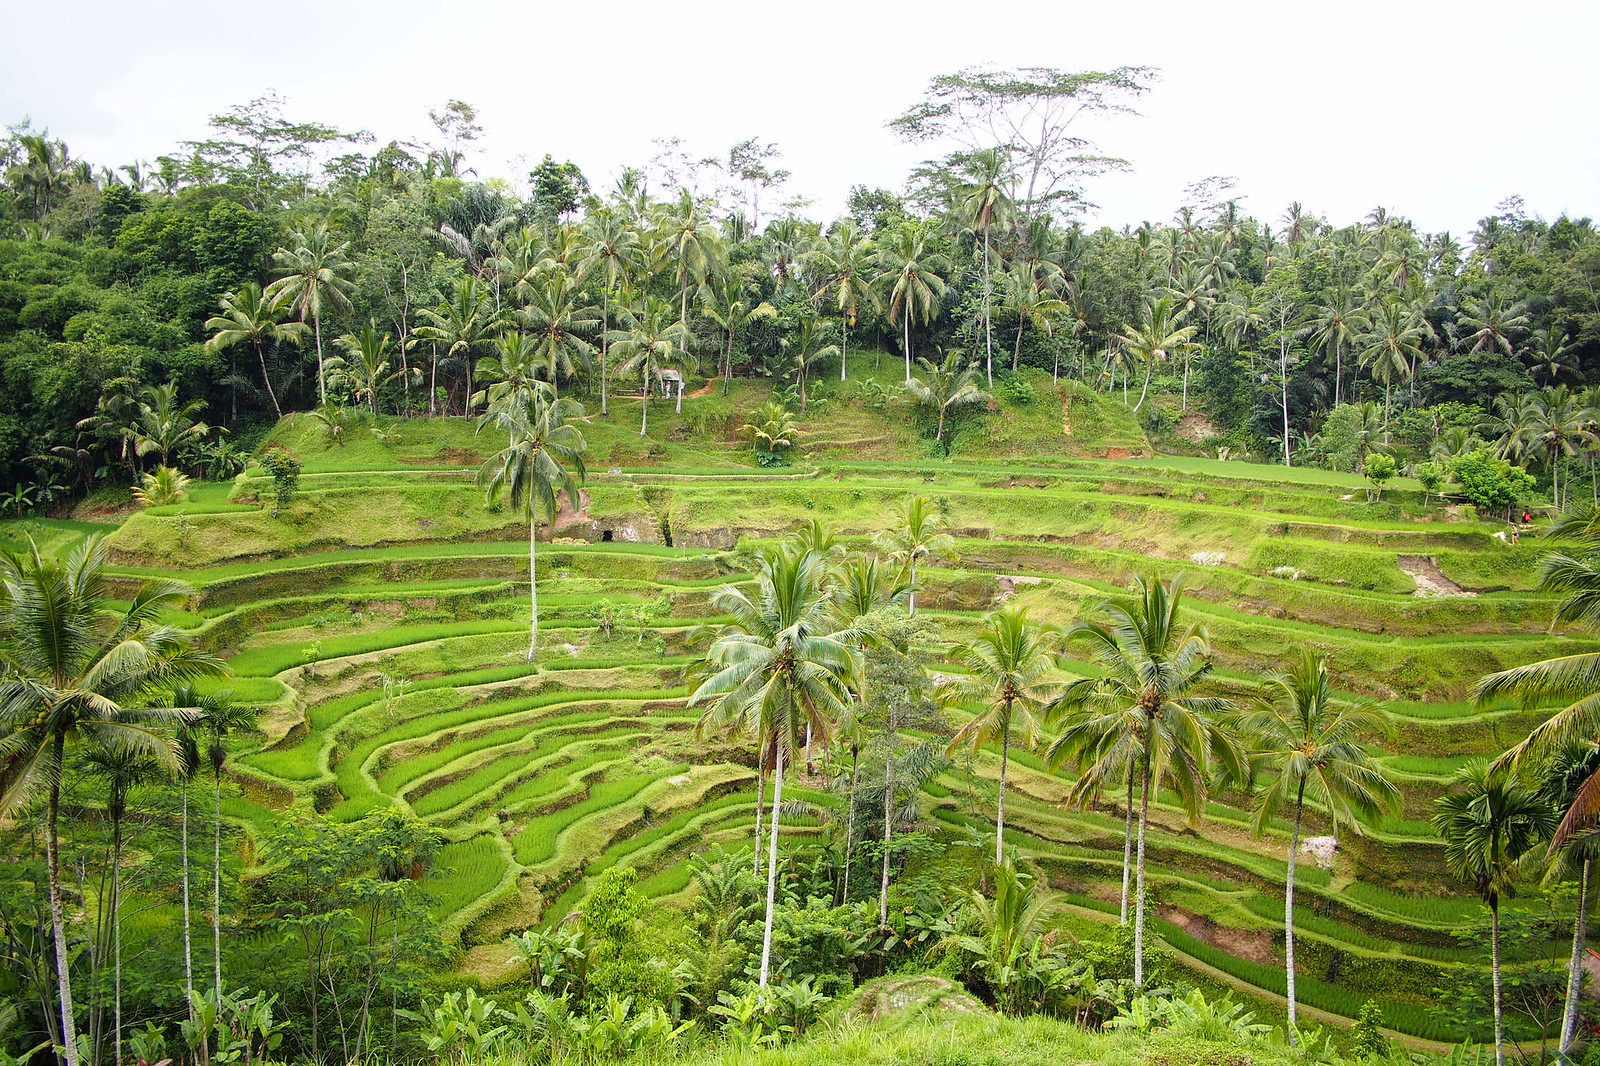 View of the Tegalalang rice terrace in Ubud Bali